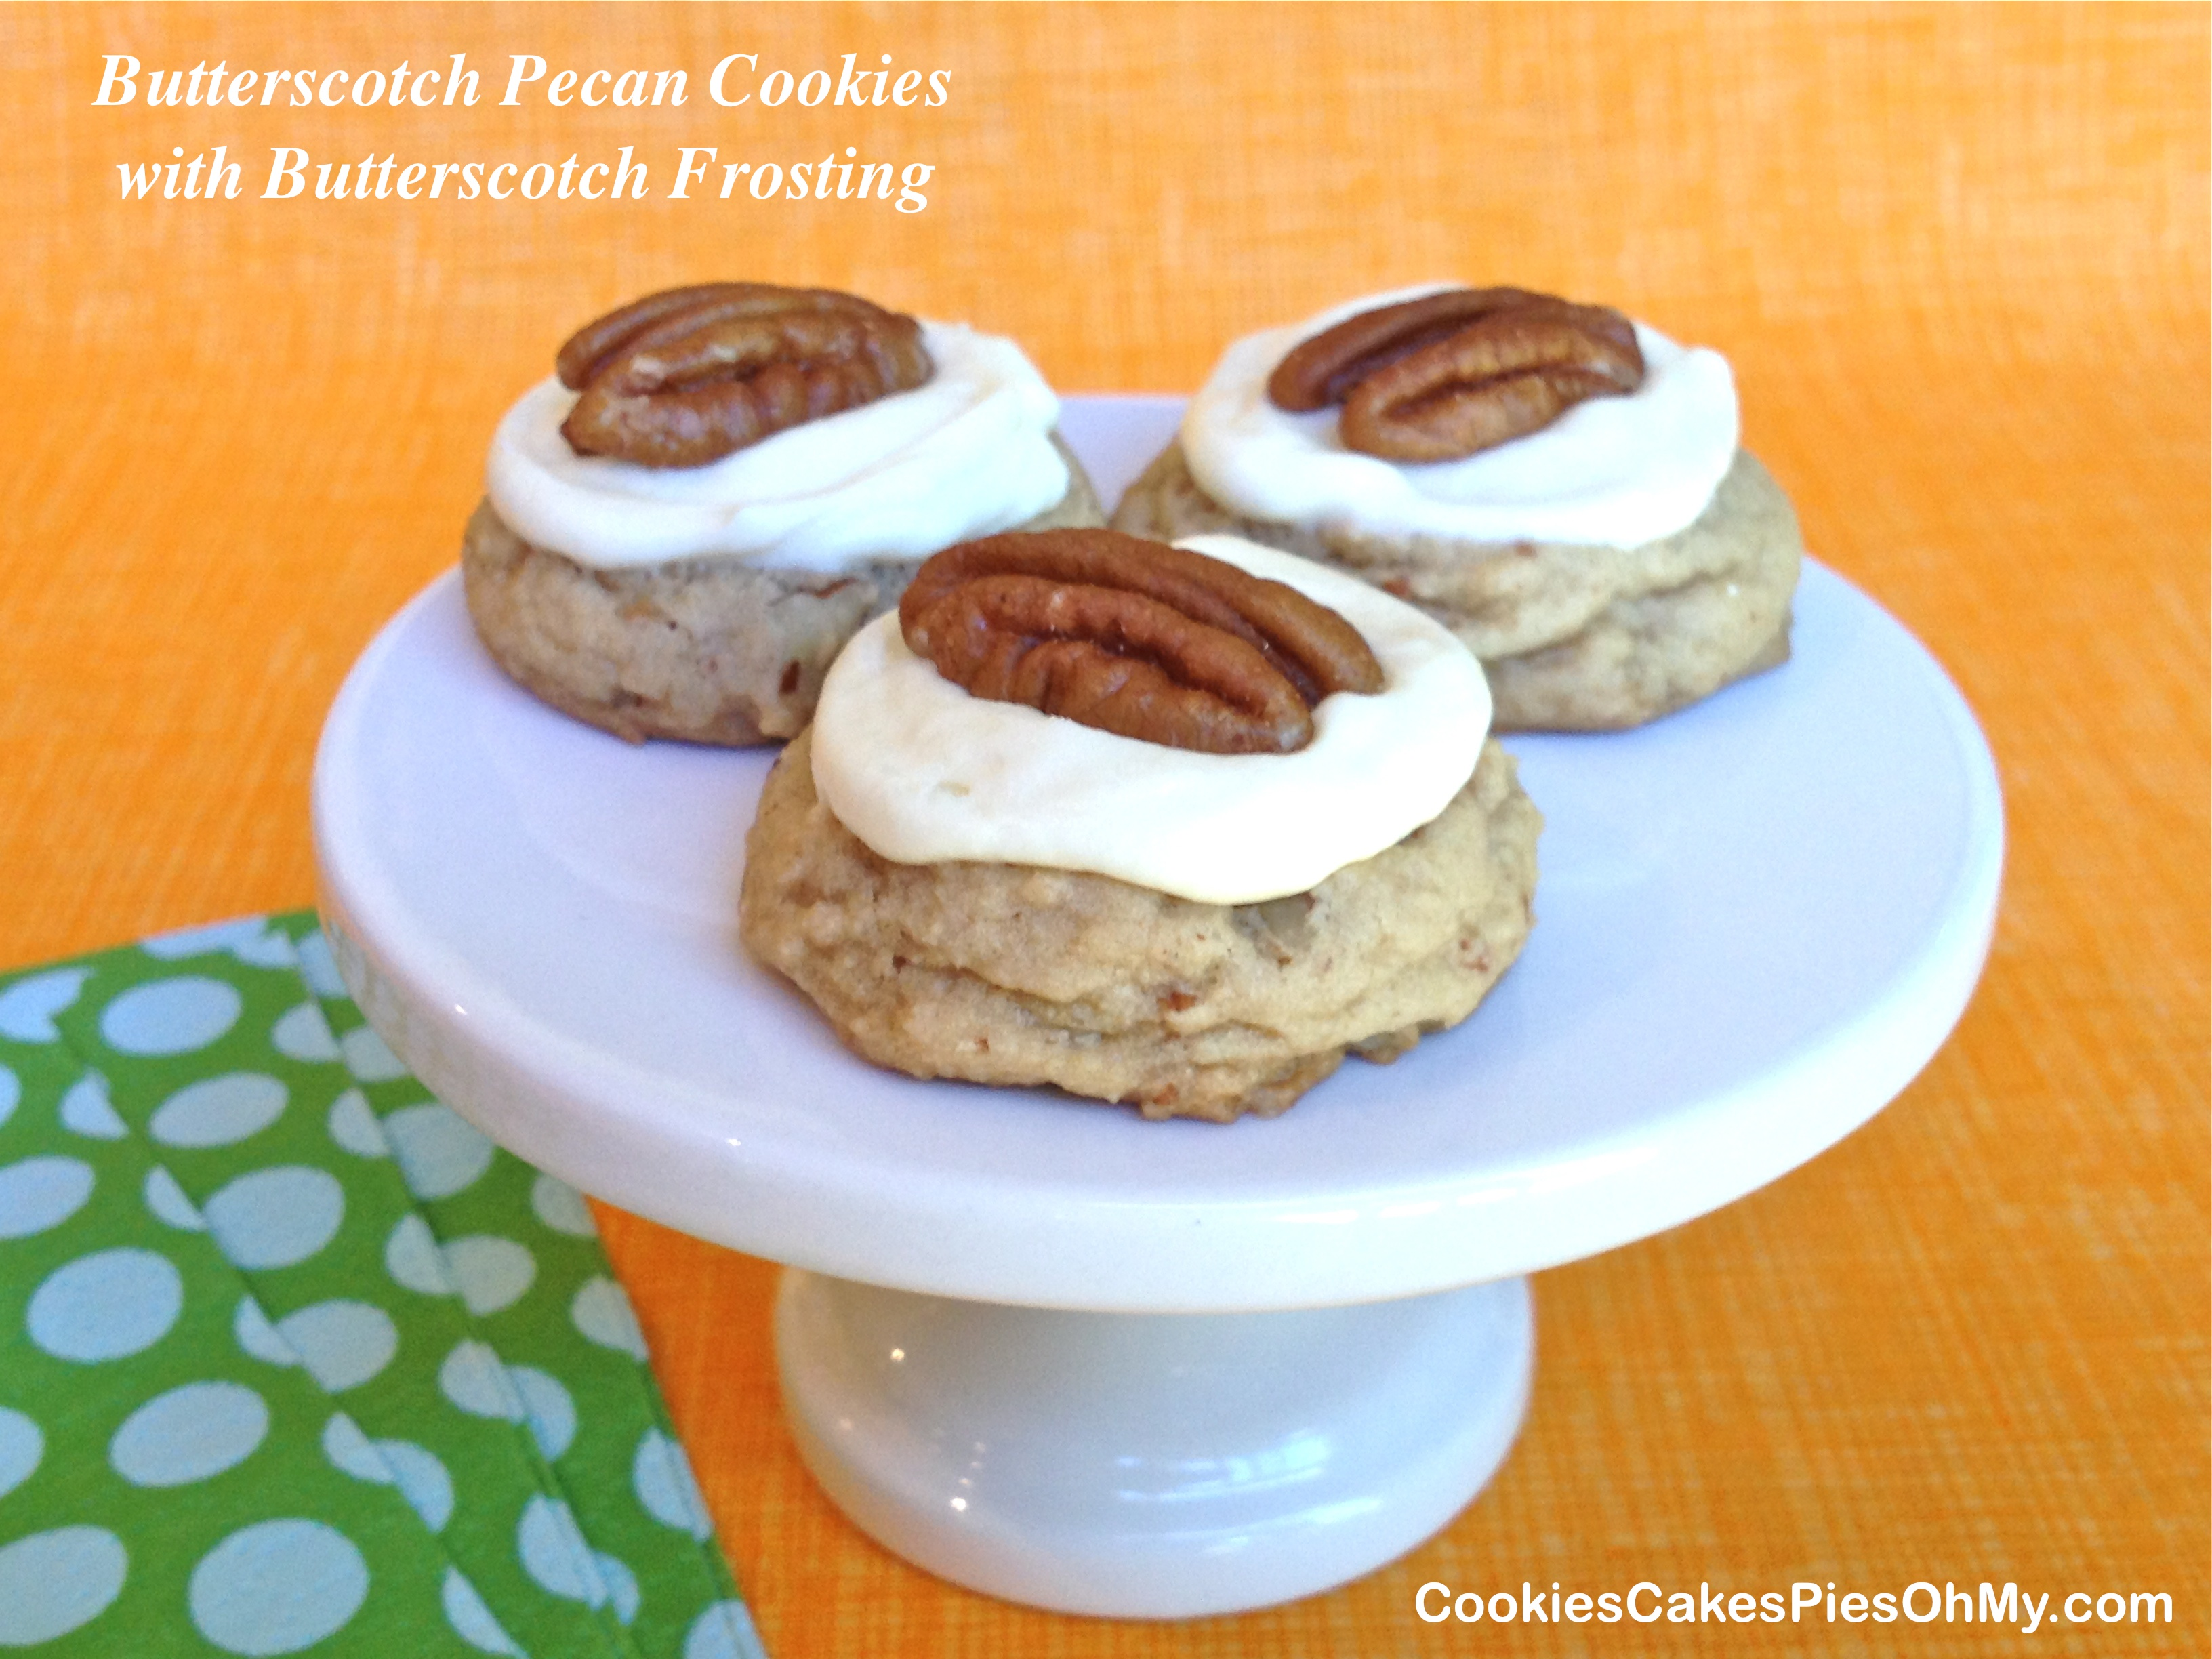 Butterscotch Pecan cookies with Butterscotch Frosting ...